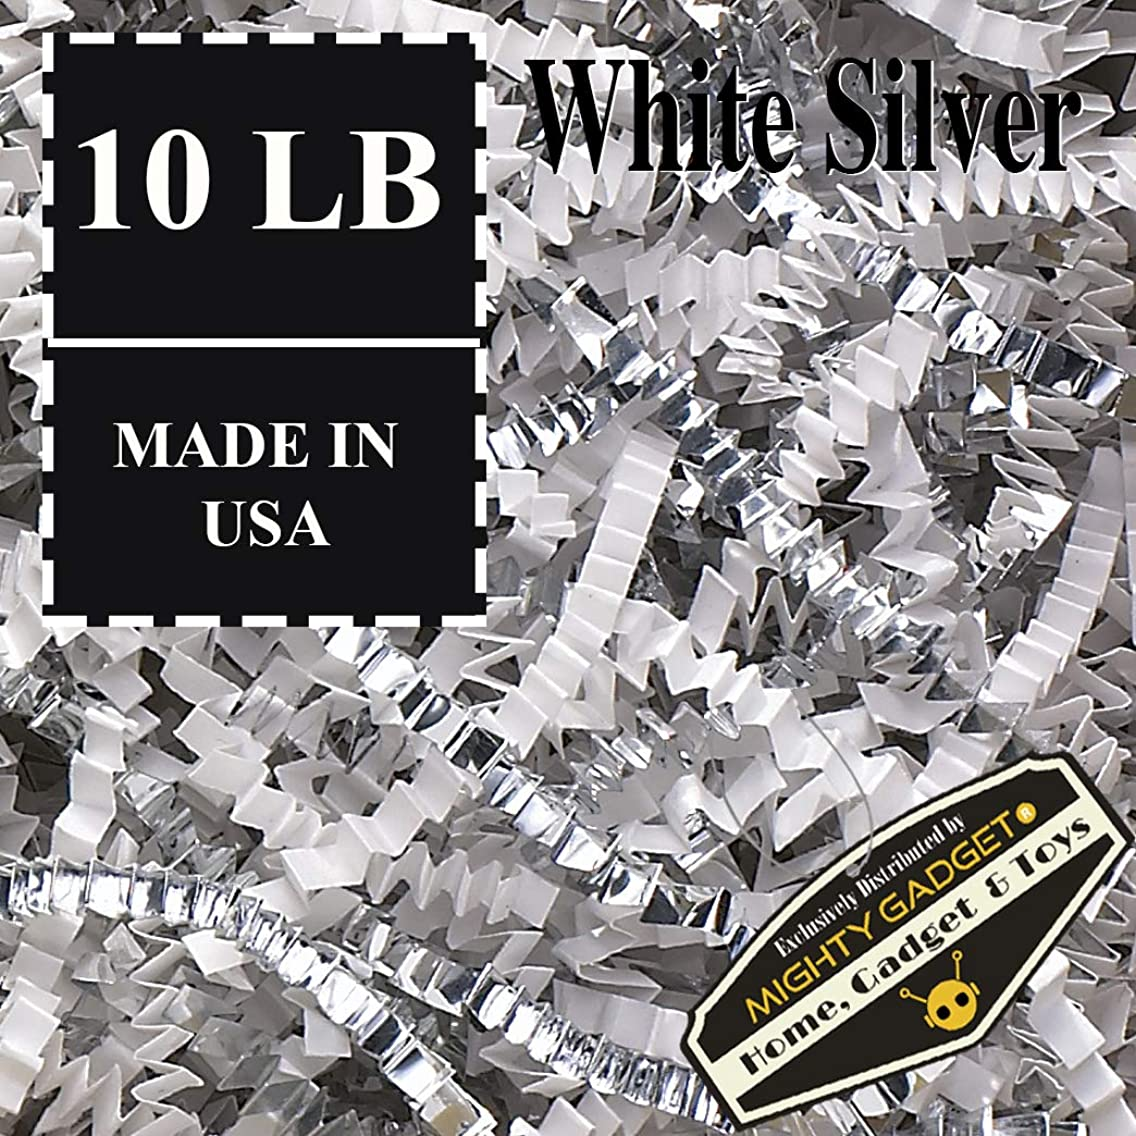 Mighty Gadget (R) 10 LB Premium White Silver Metallic Mix Crinkle Cut Paper Shred Filler for Gift Wrapping & Basket Filling